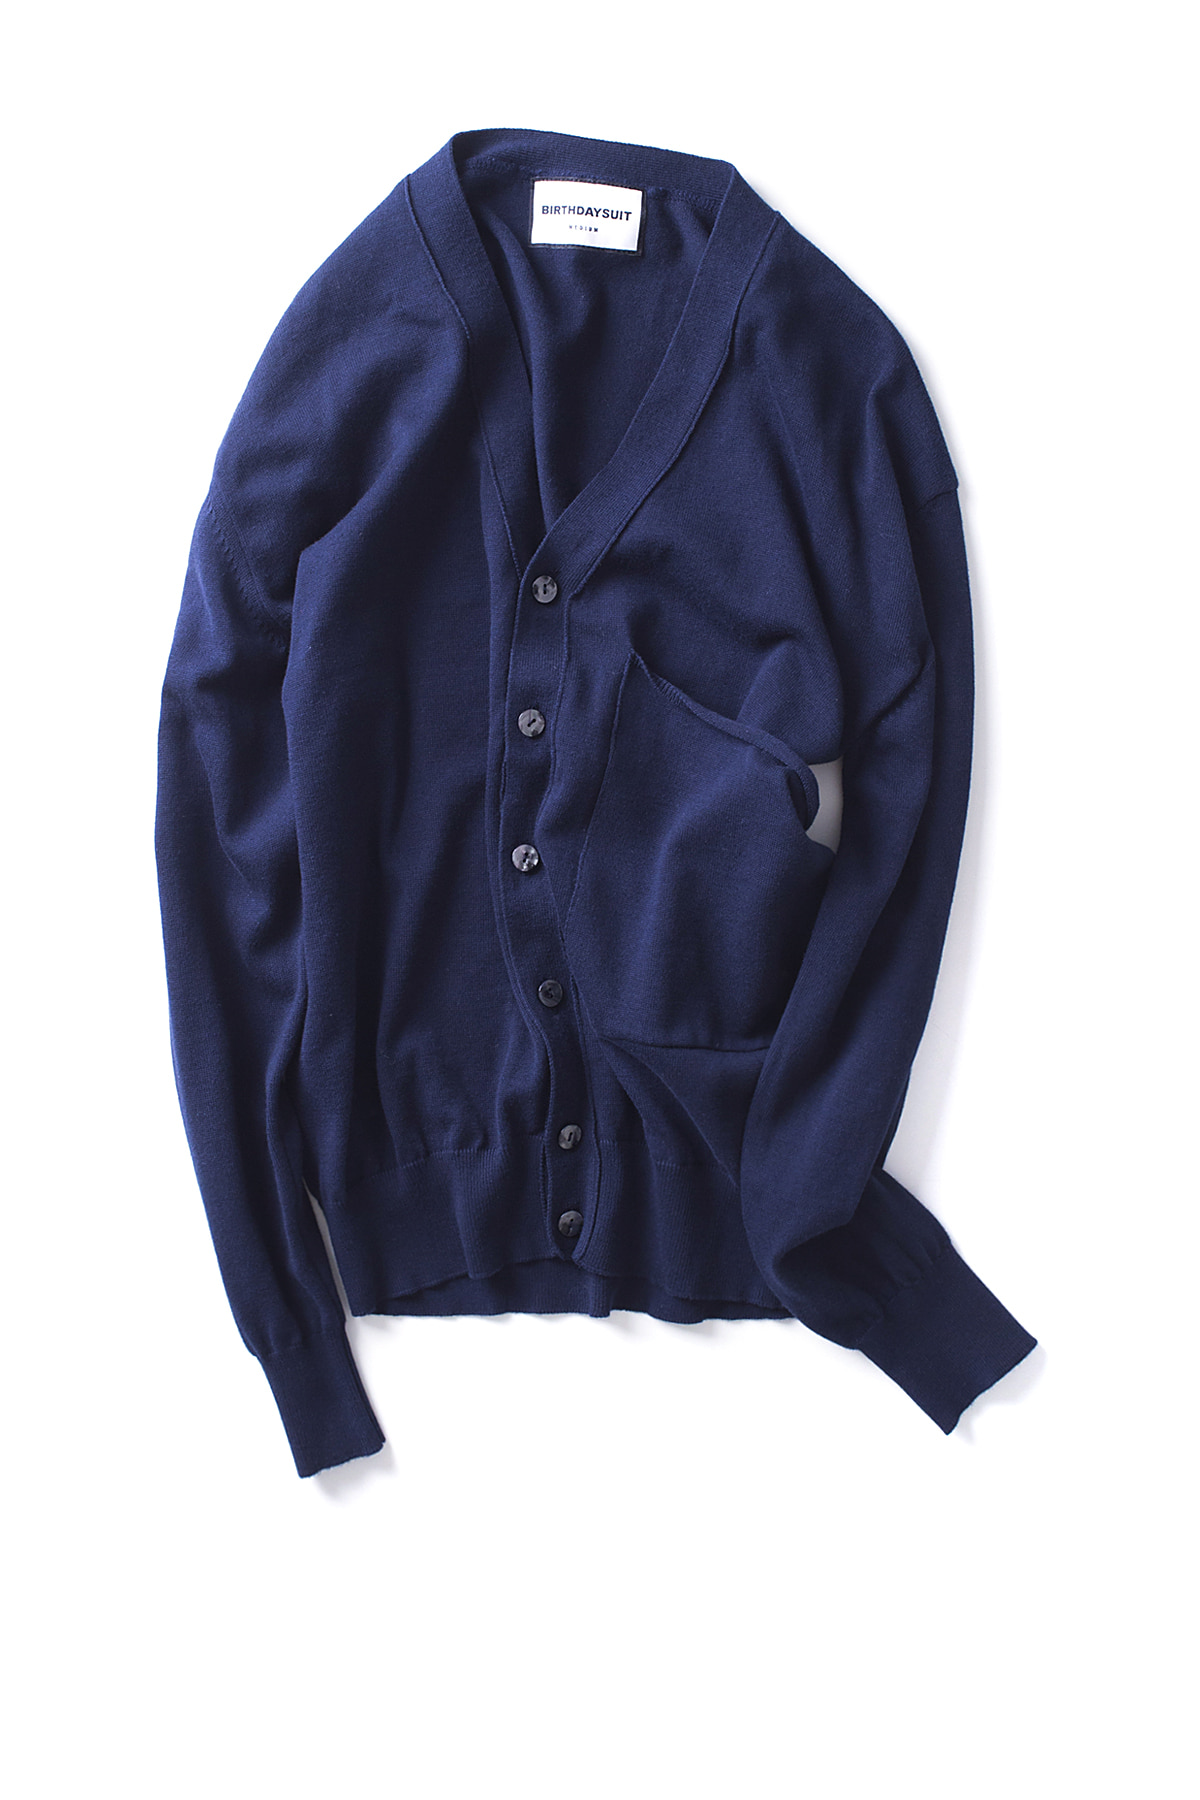 BIRTHDAYSUIT : Big Pocket knit Cardigan (Navy)